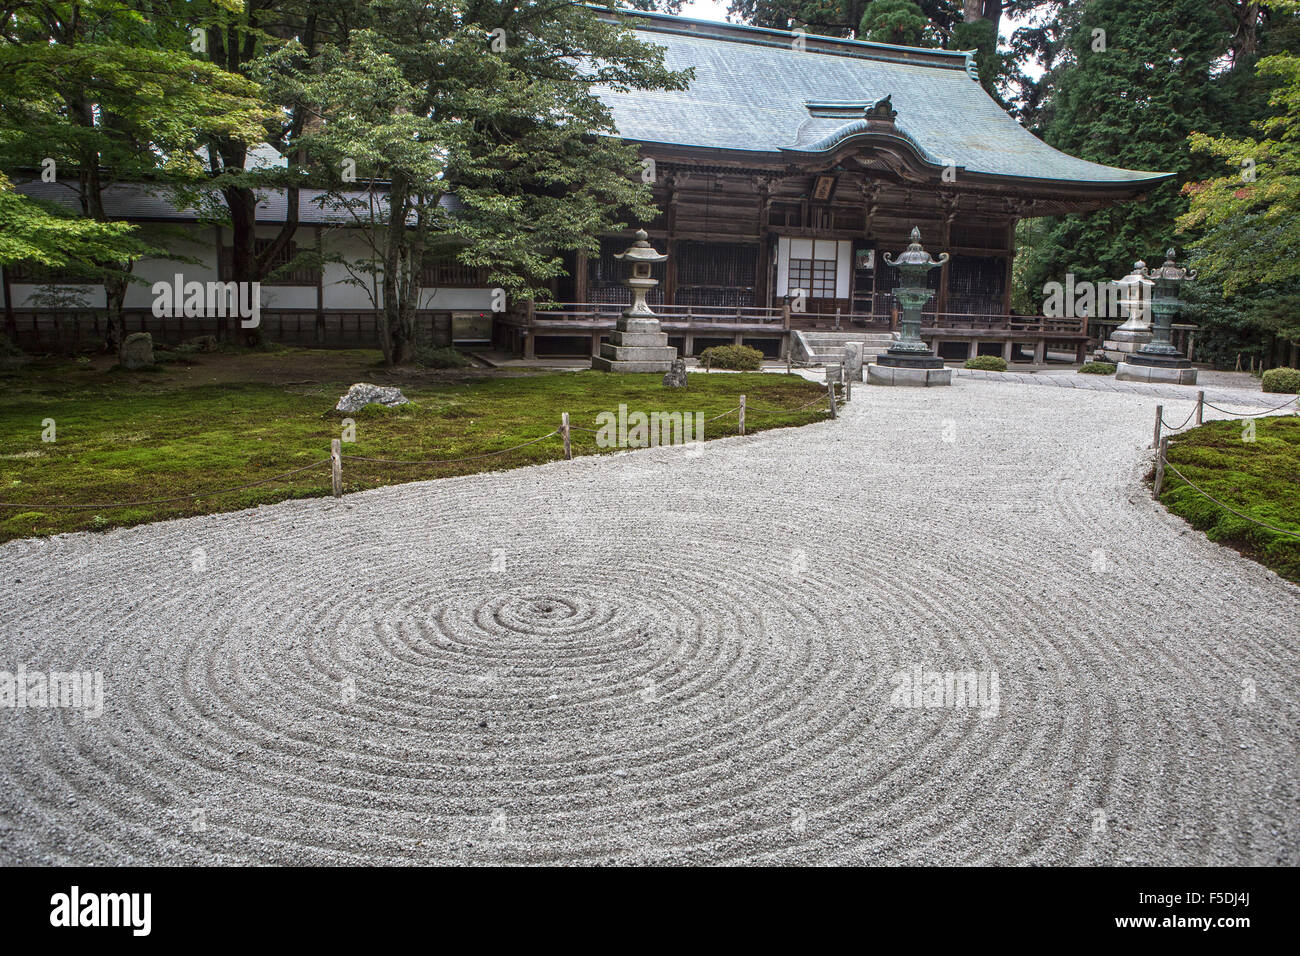 Raked garden in Kyoto japan - Stock Image